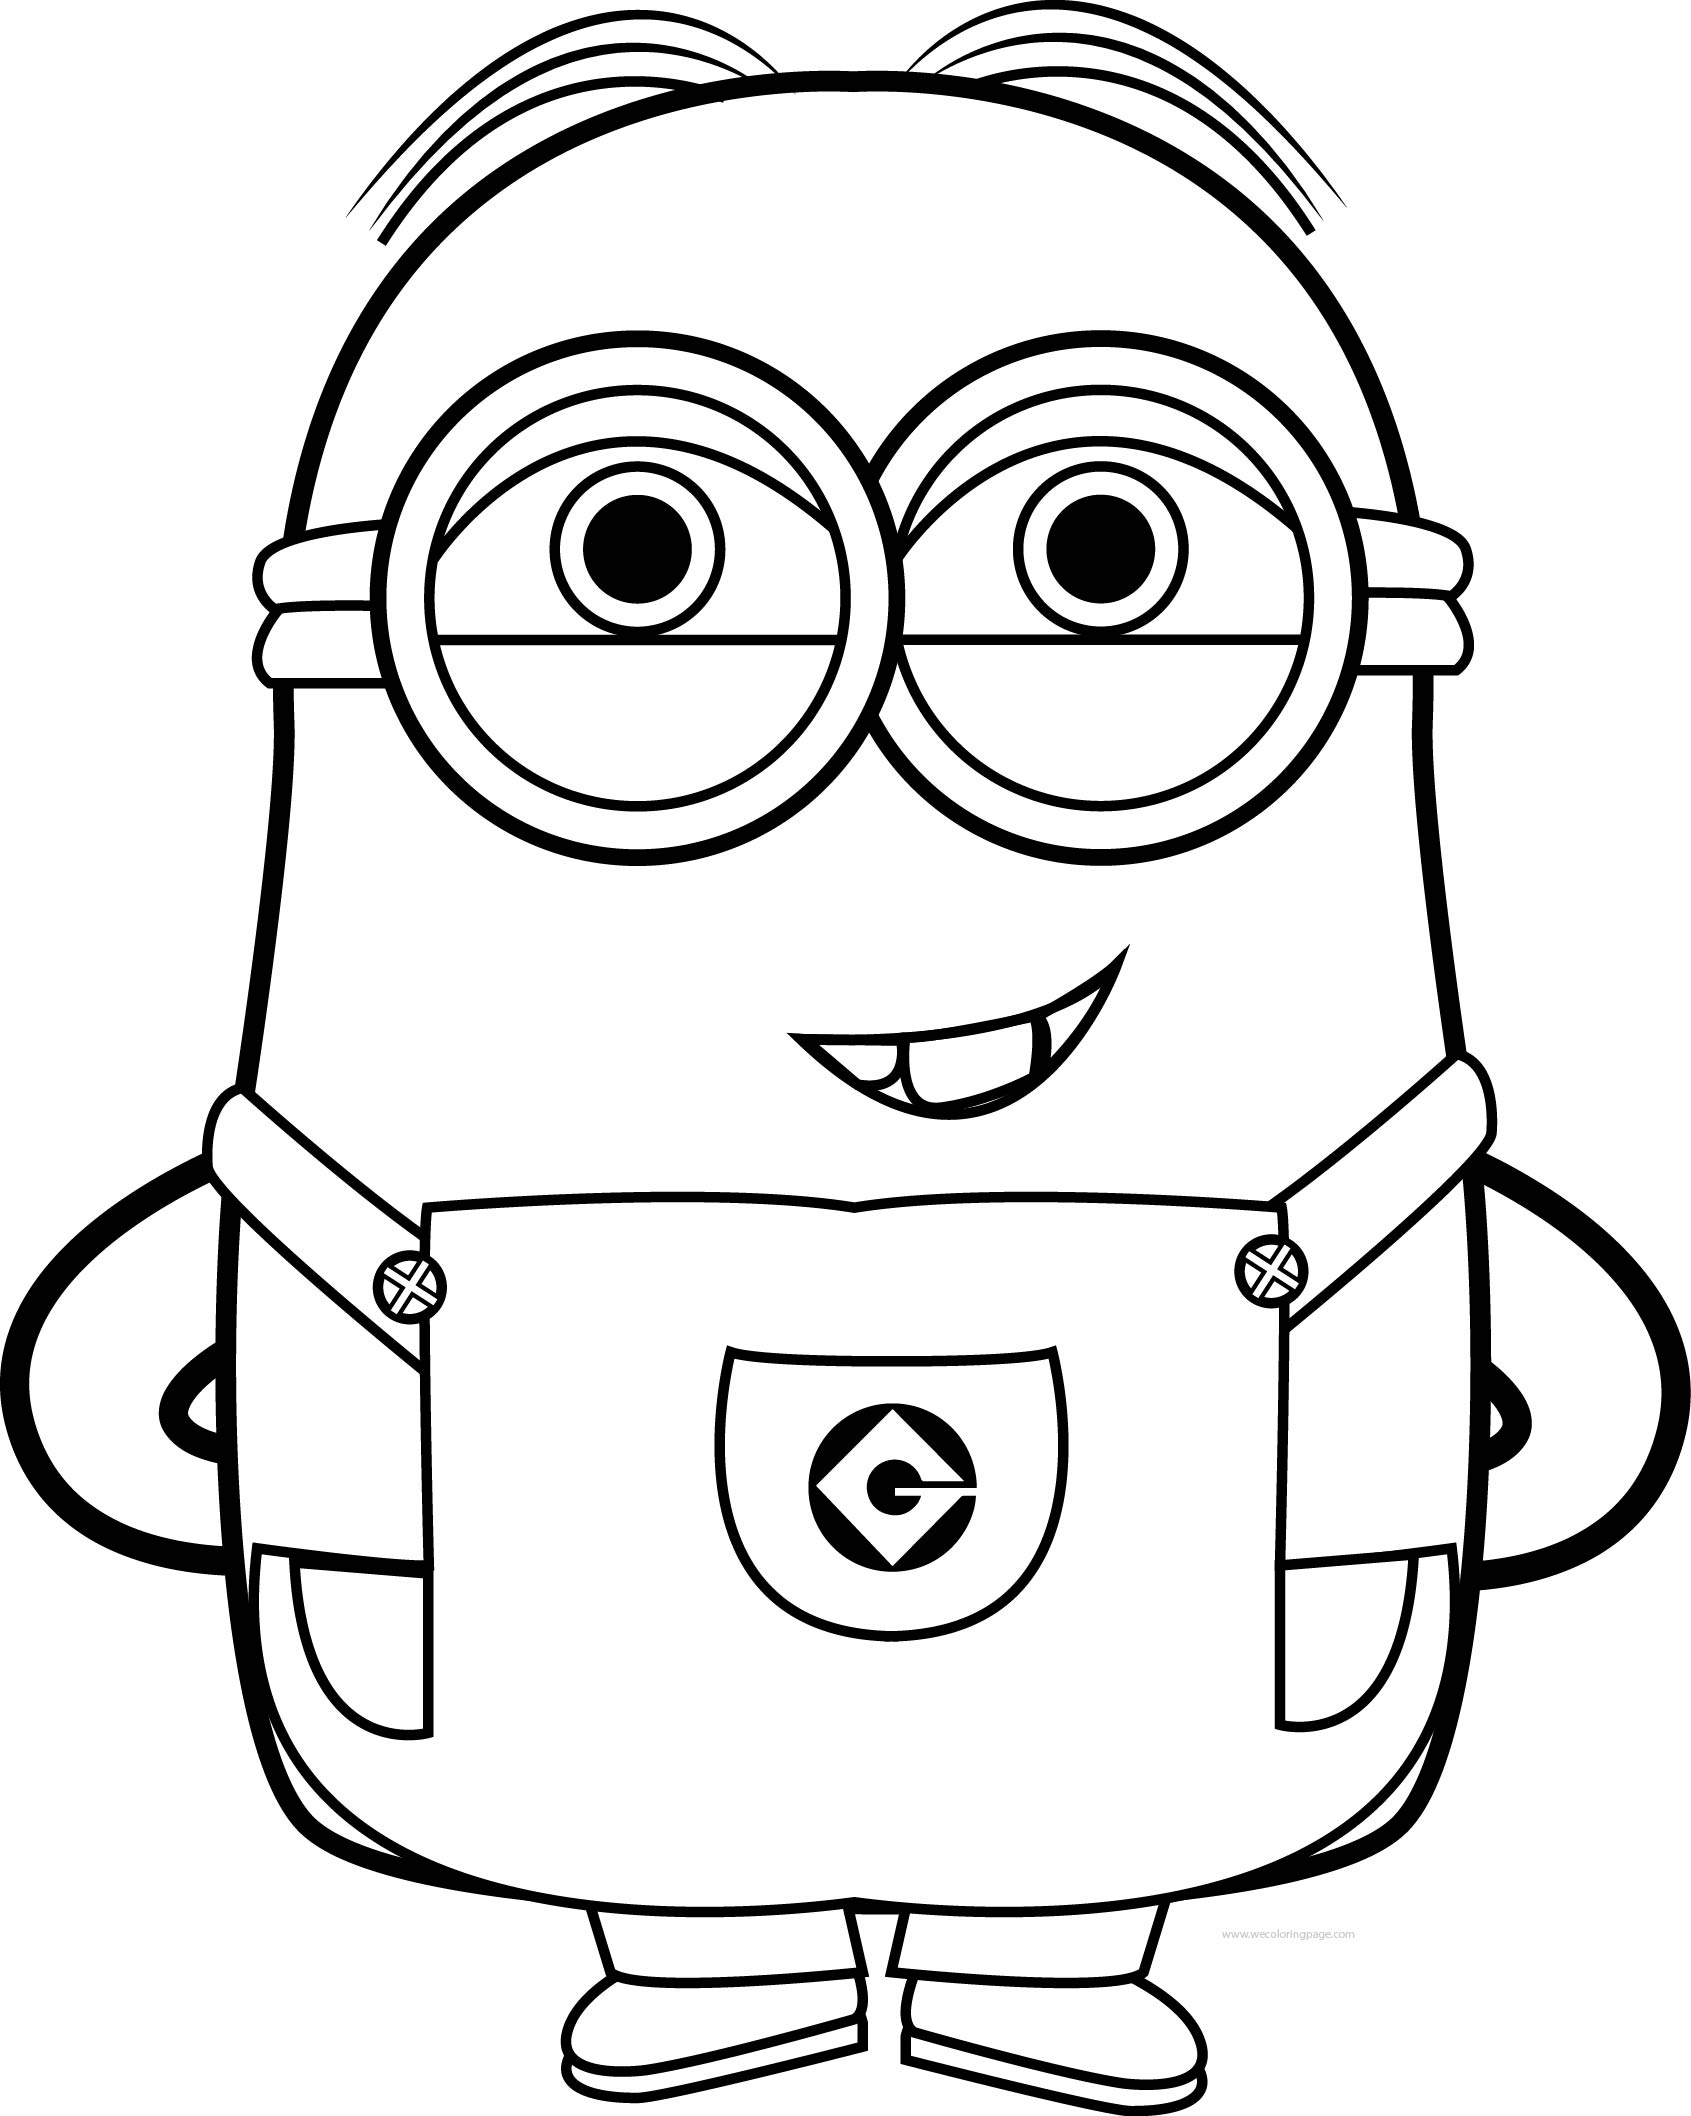 minion coloring minion coloring pages kevin at getcoloringscom free minion coloring 1 1